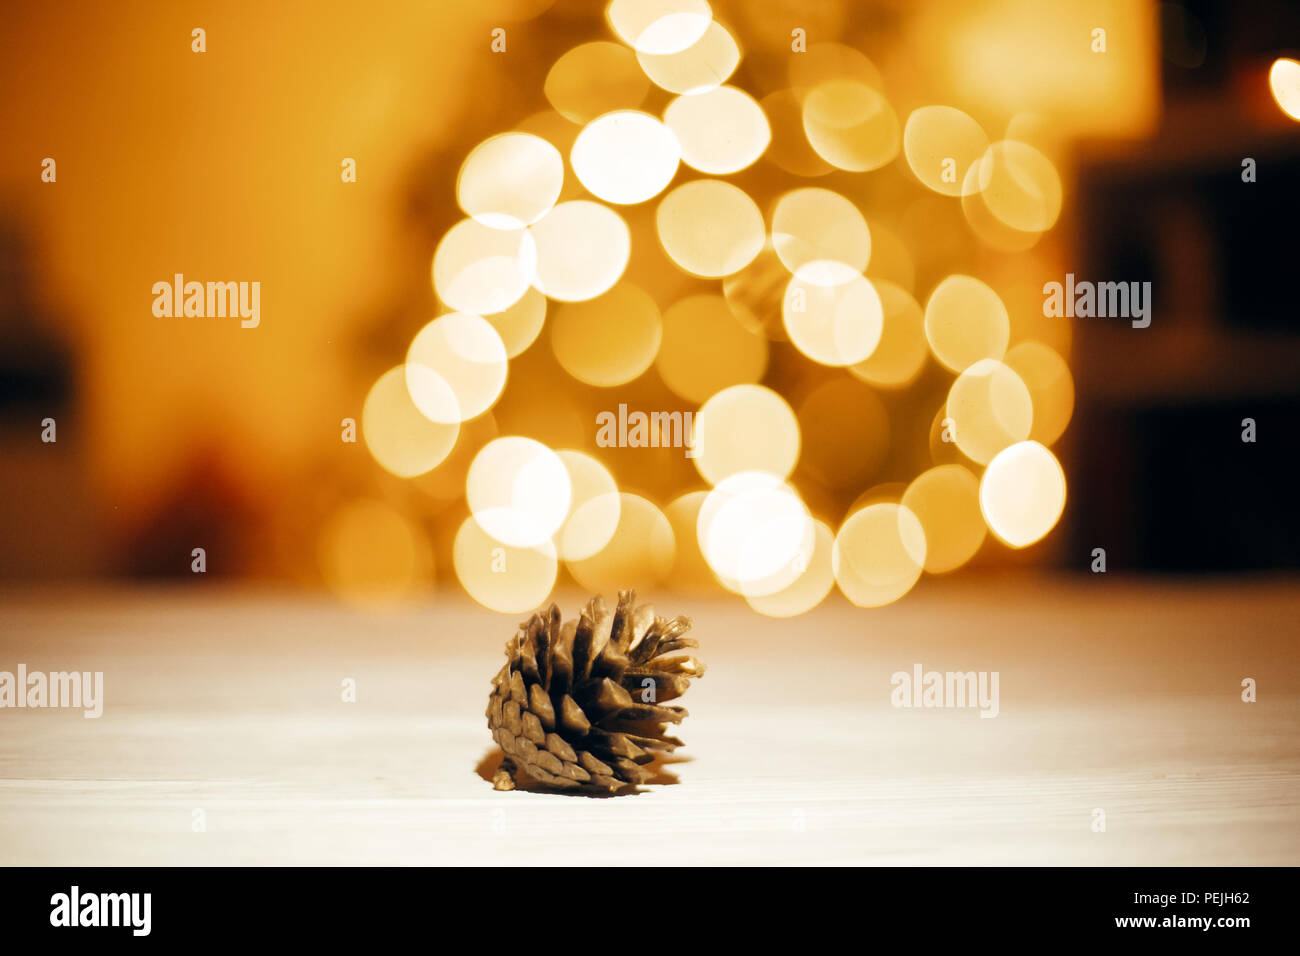 golden pine cone on wooden table on background of christmas tree in festive lights space for text merry christmas and happy new year concept